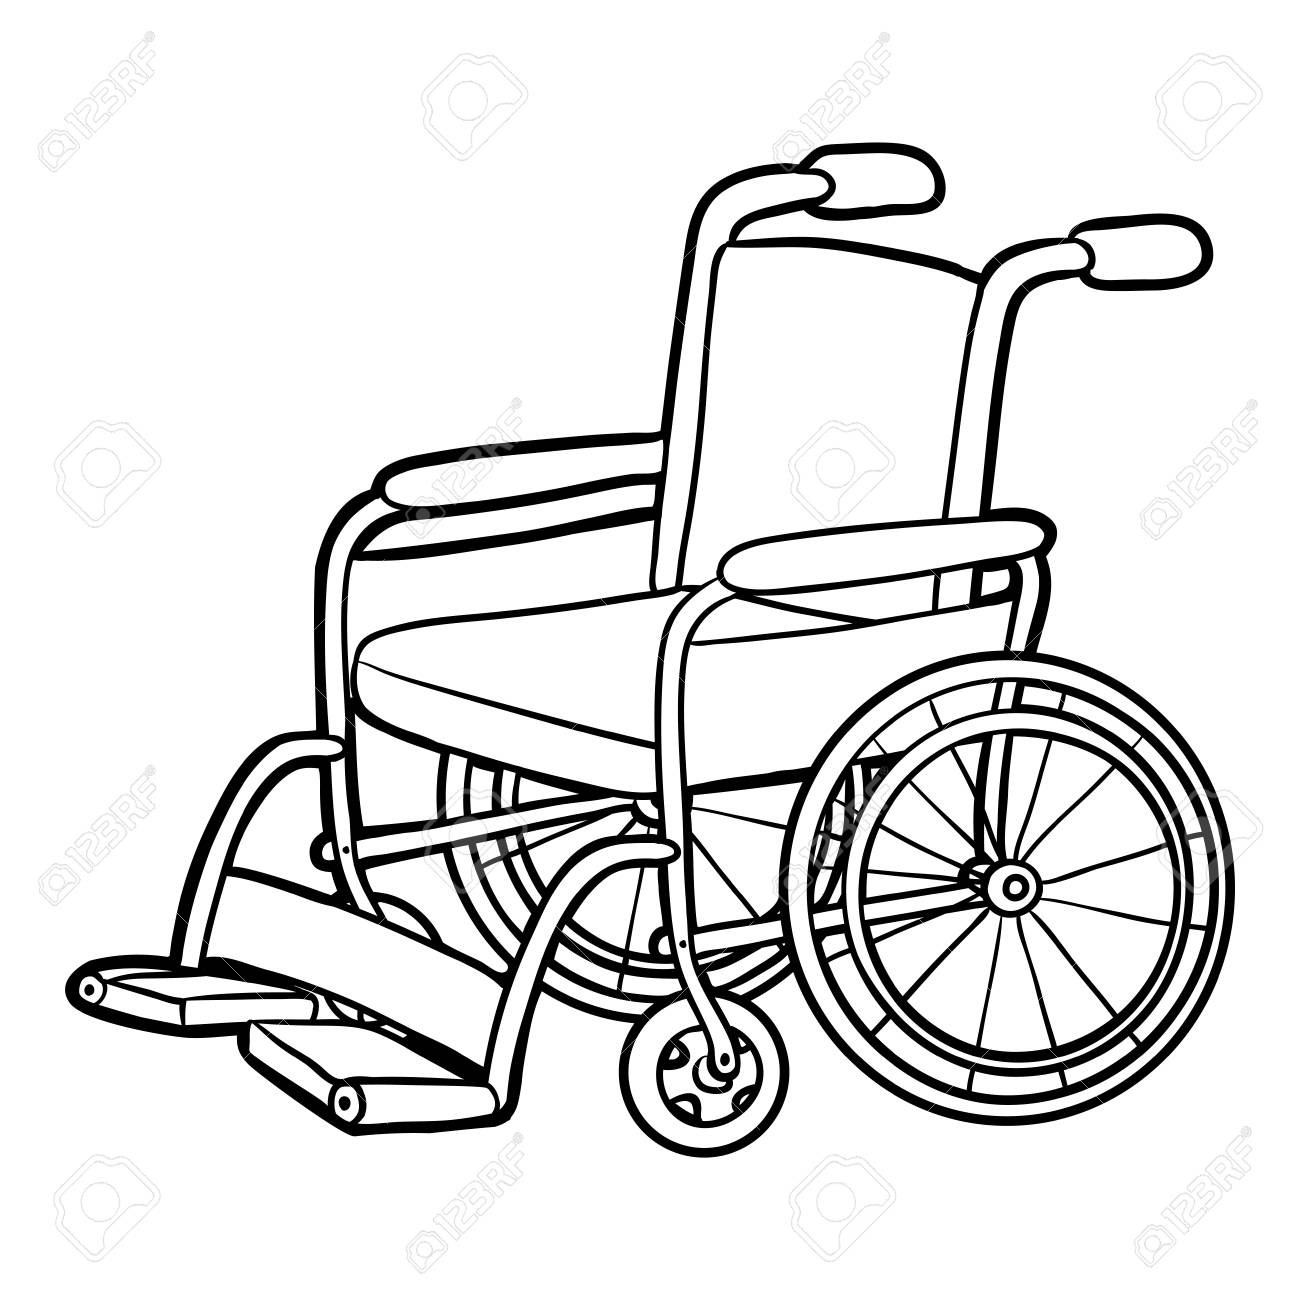 1300x1300 Coloring Book For Children, Wheelchair. Royalty Free Cliparts